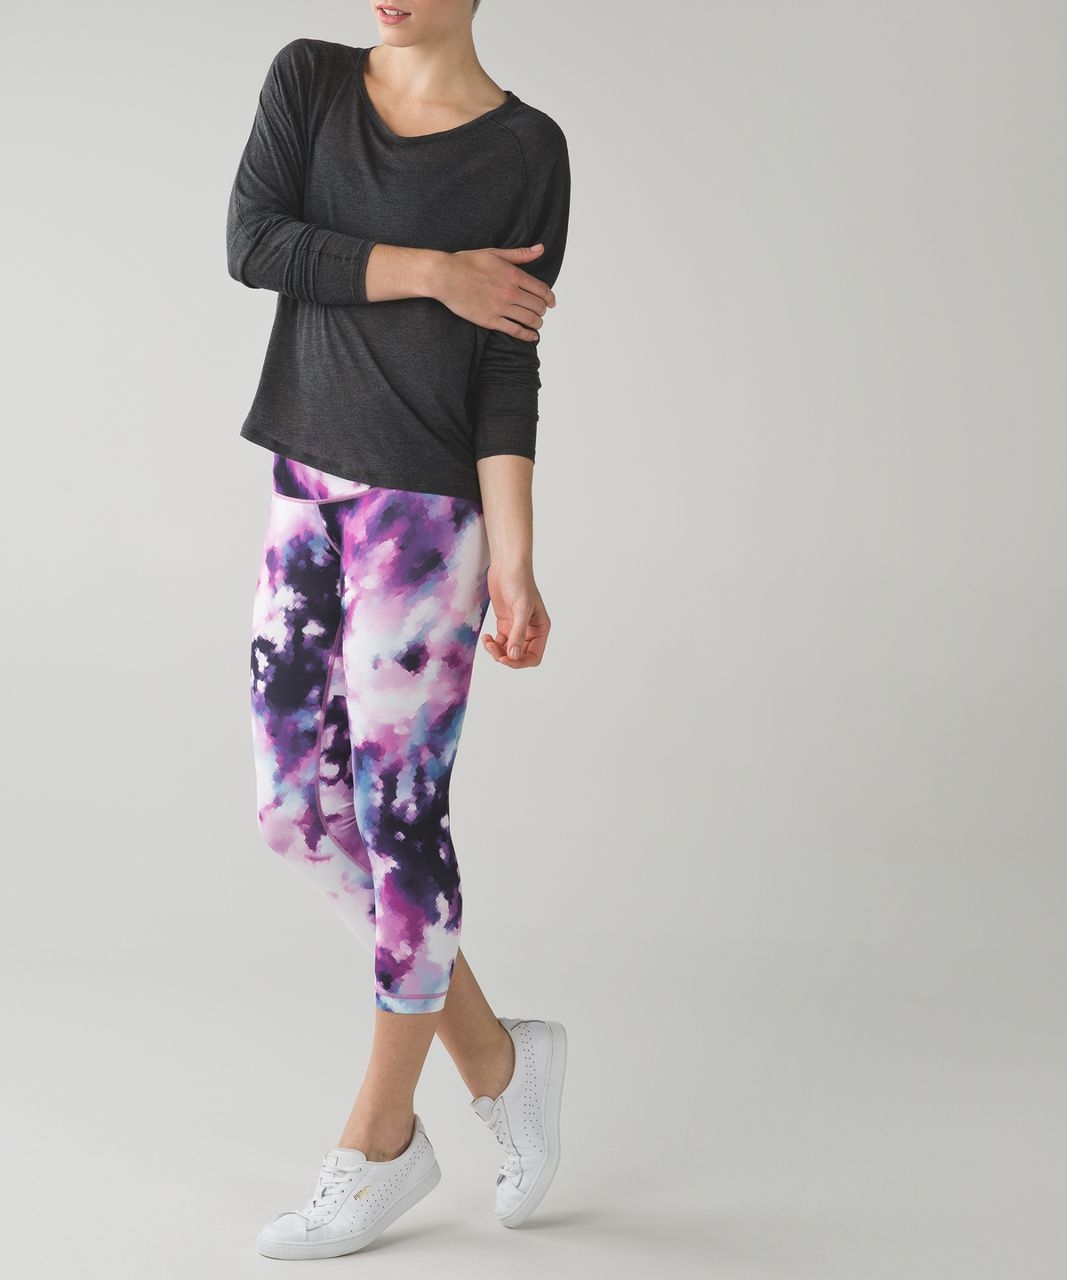 Lululemon Wunder Under Crop III - Blooming Pixie Multi